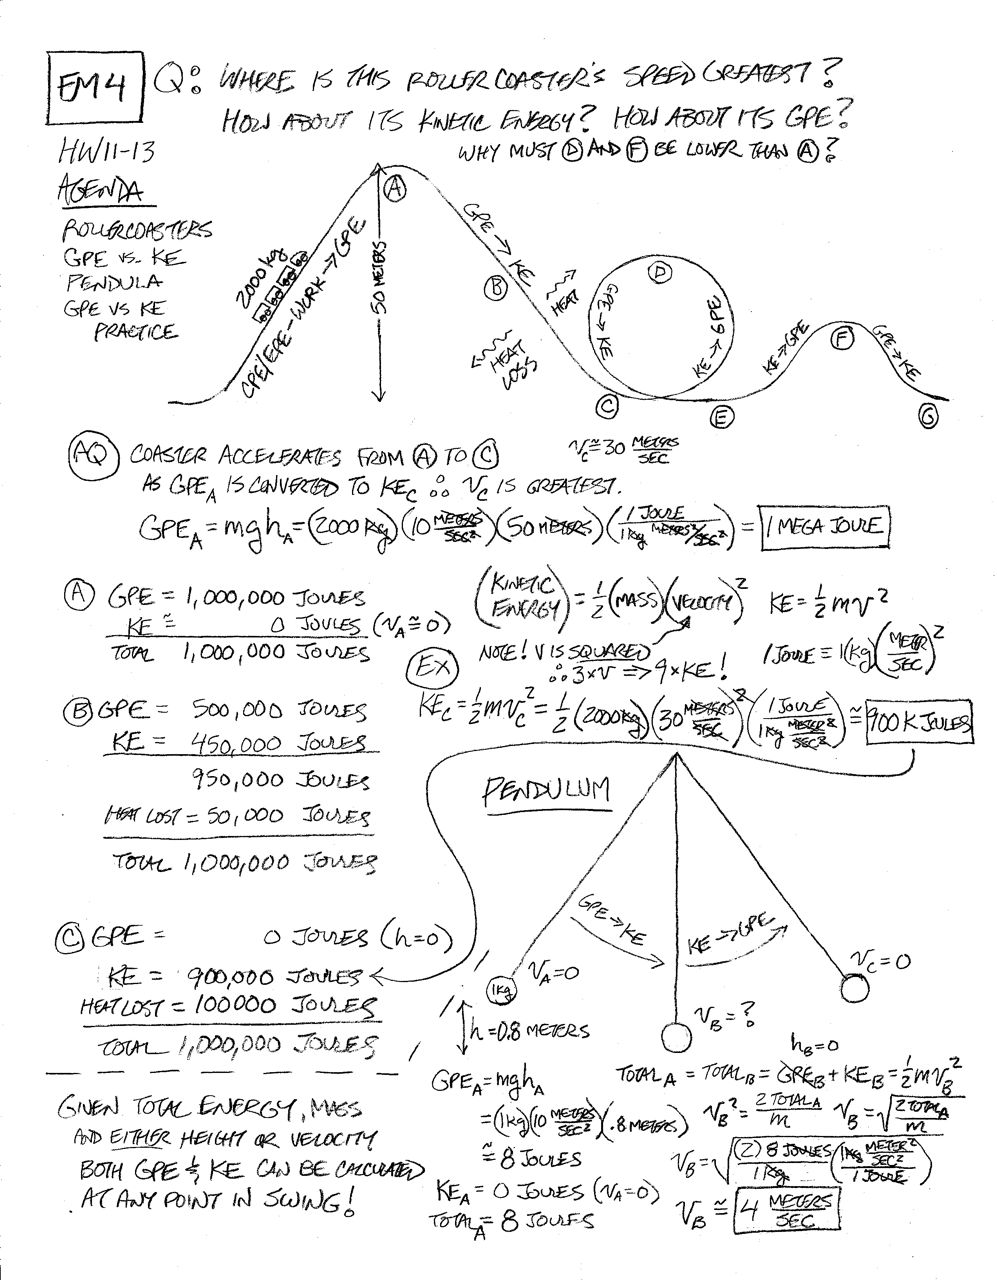 simple physics how i improved my grades Learn the math skills required to do physics problems math is often said to be the language of physics becoming an expert in the fundamentals of math is a great way to improve your ability to master physics problems some complex physics equations even require specialized mathematical skills (like taking derivatives and integrals) to be solved.